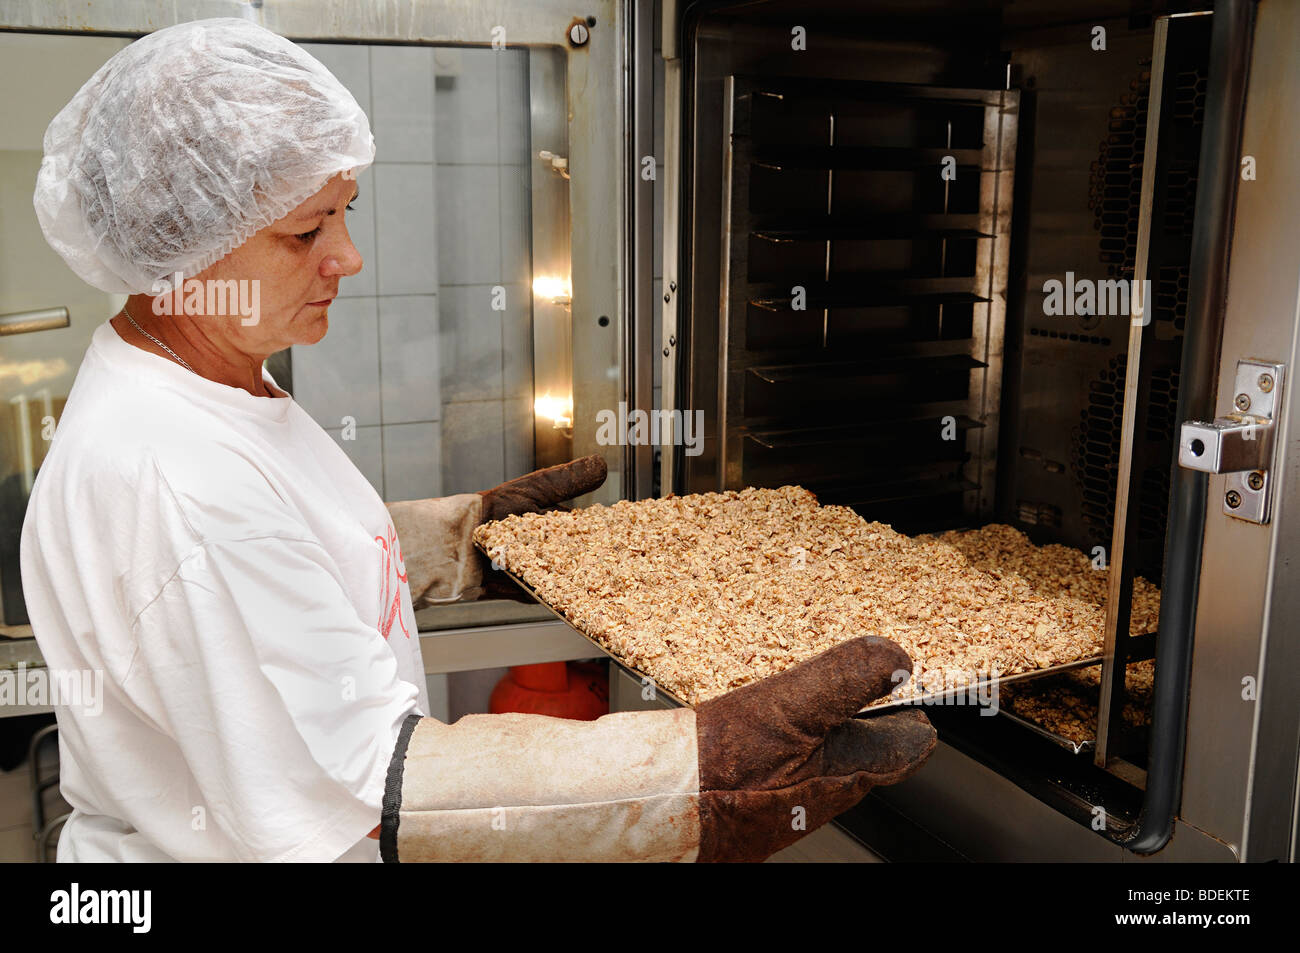 Woman Removing a Tray or Cookies from an Oven in a Commercial Bakery - Stock Image